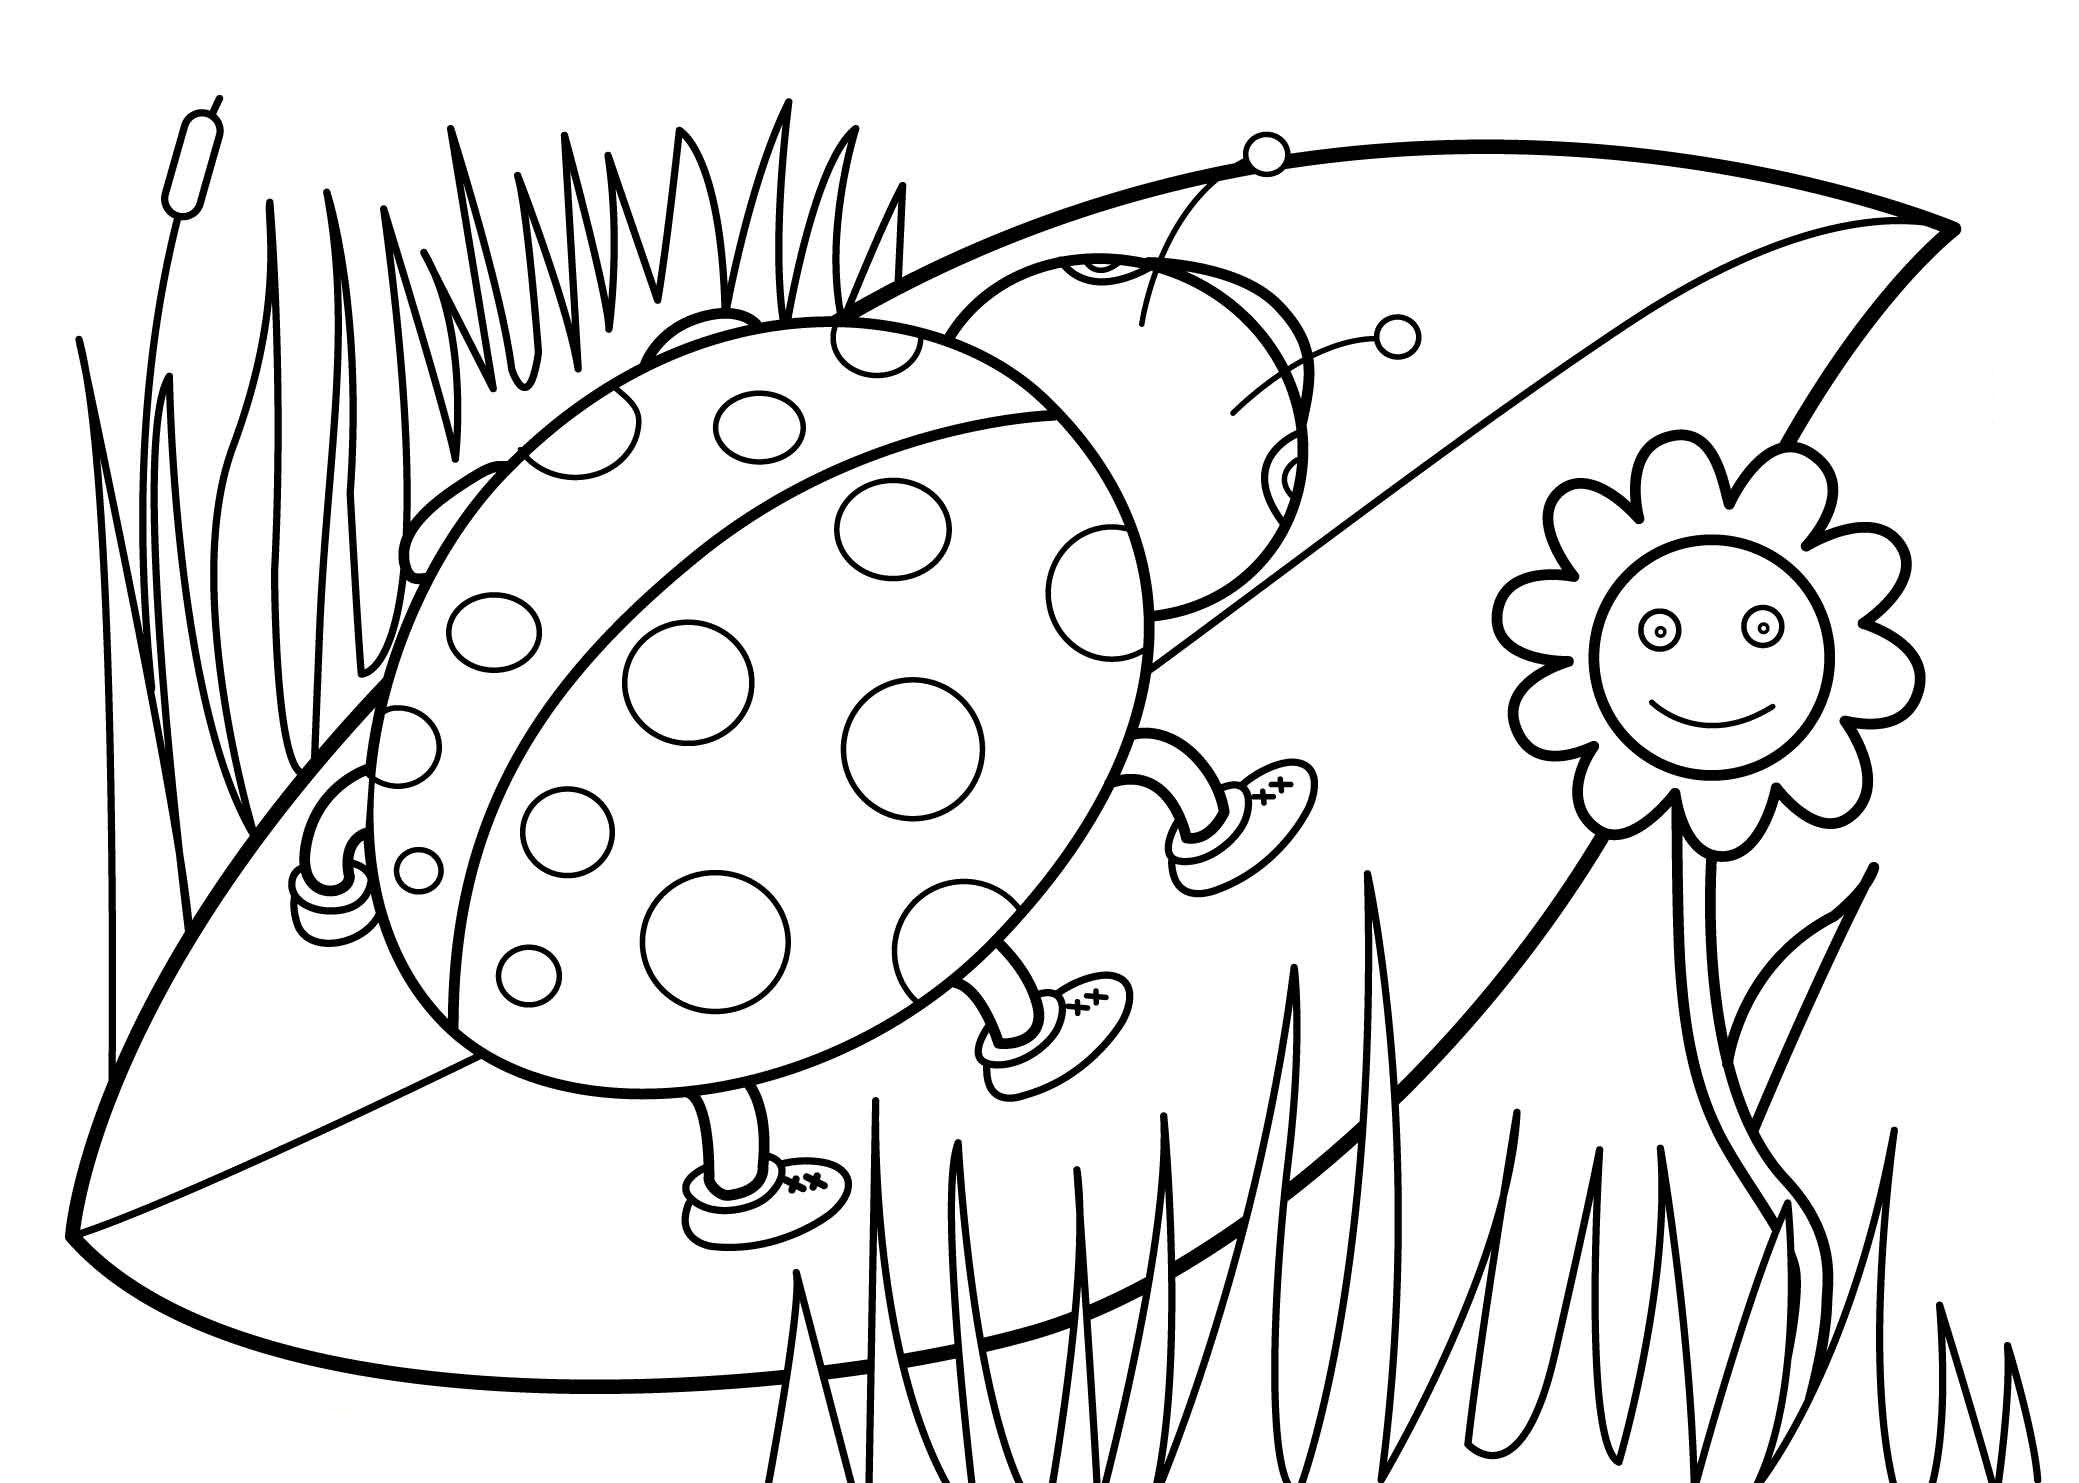 www coloring sheets make any picture a coloring page with ipiccy ipiccy coloring www sheets